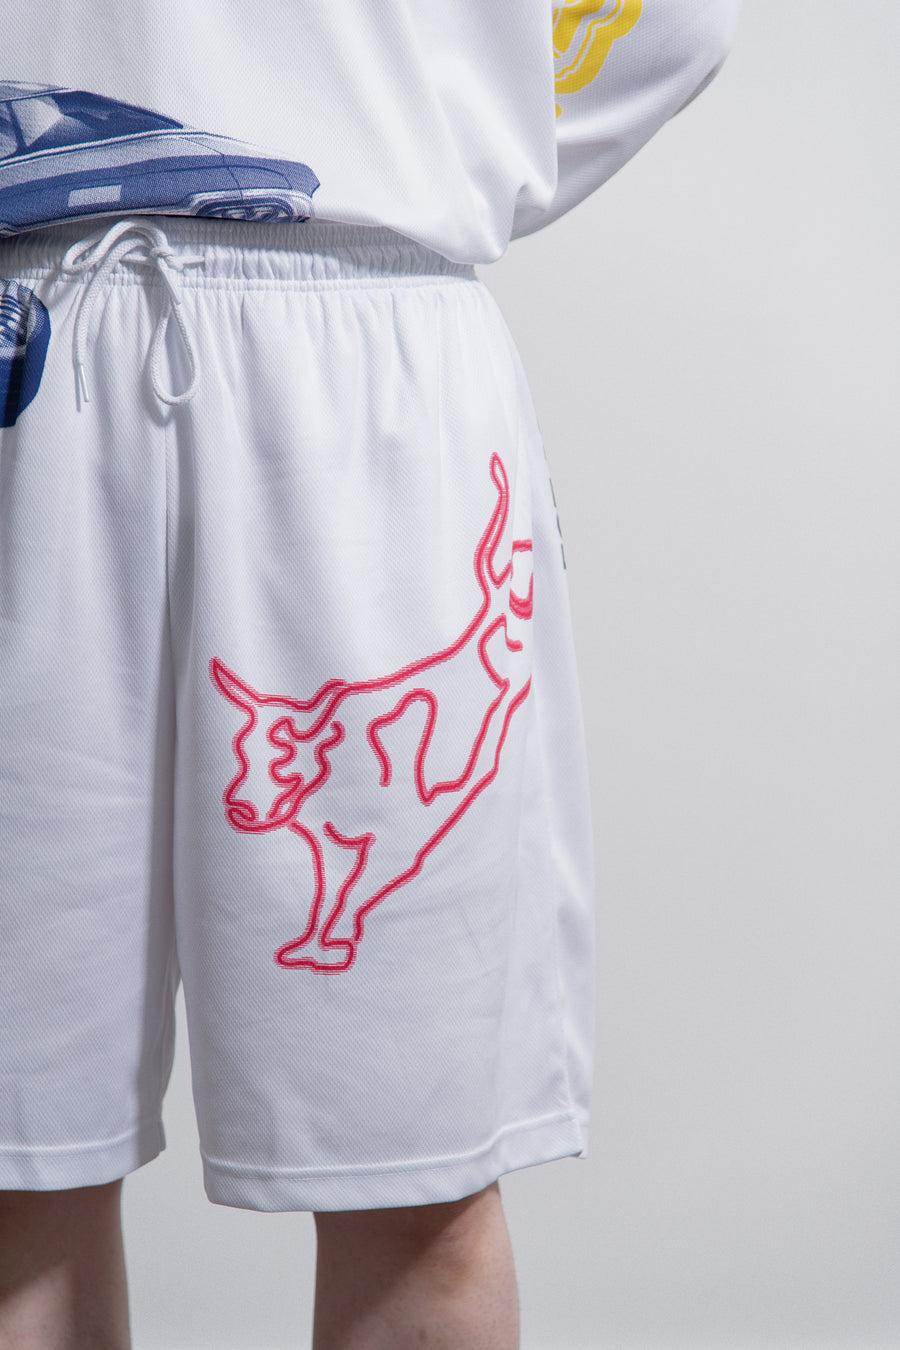 Modernist Graphic Short White